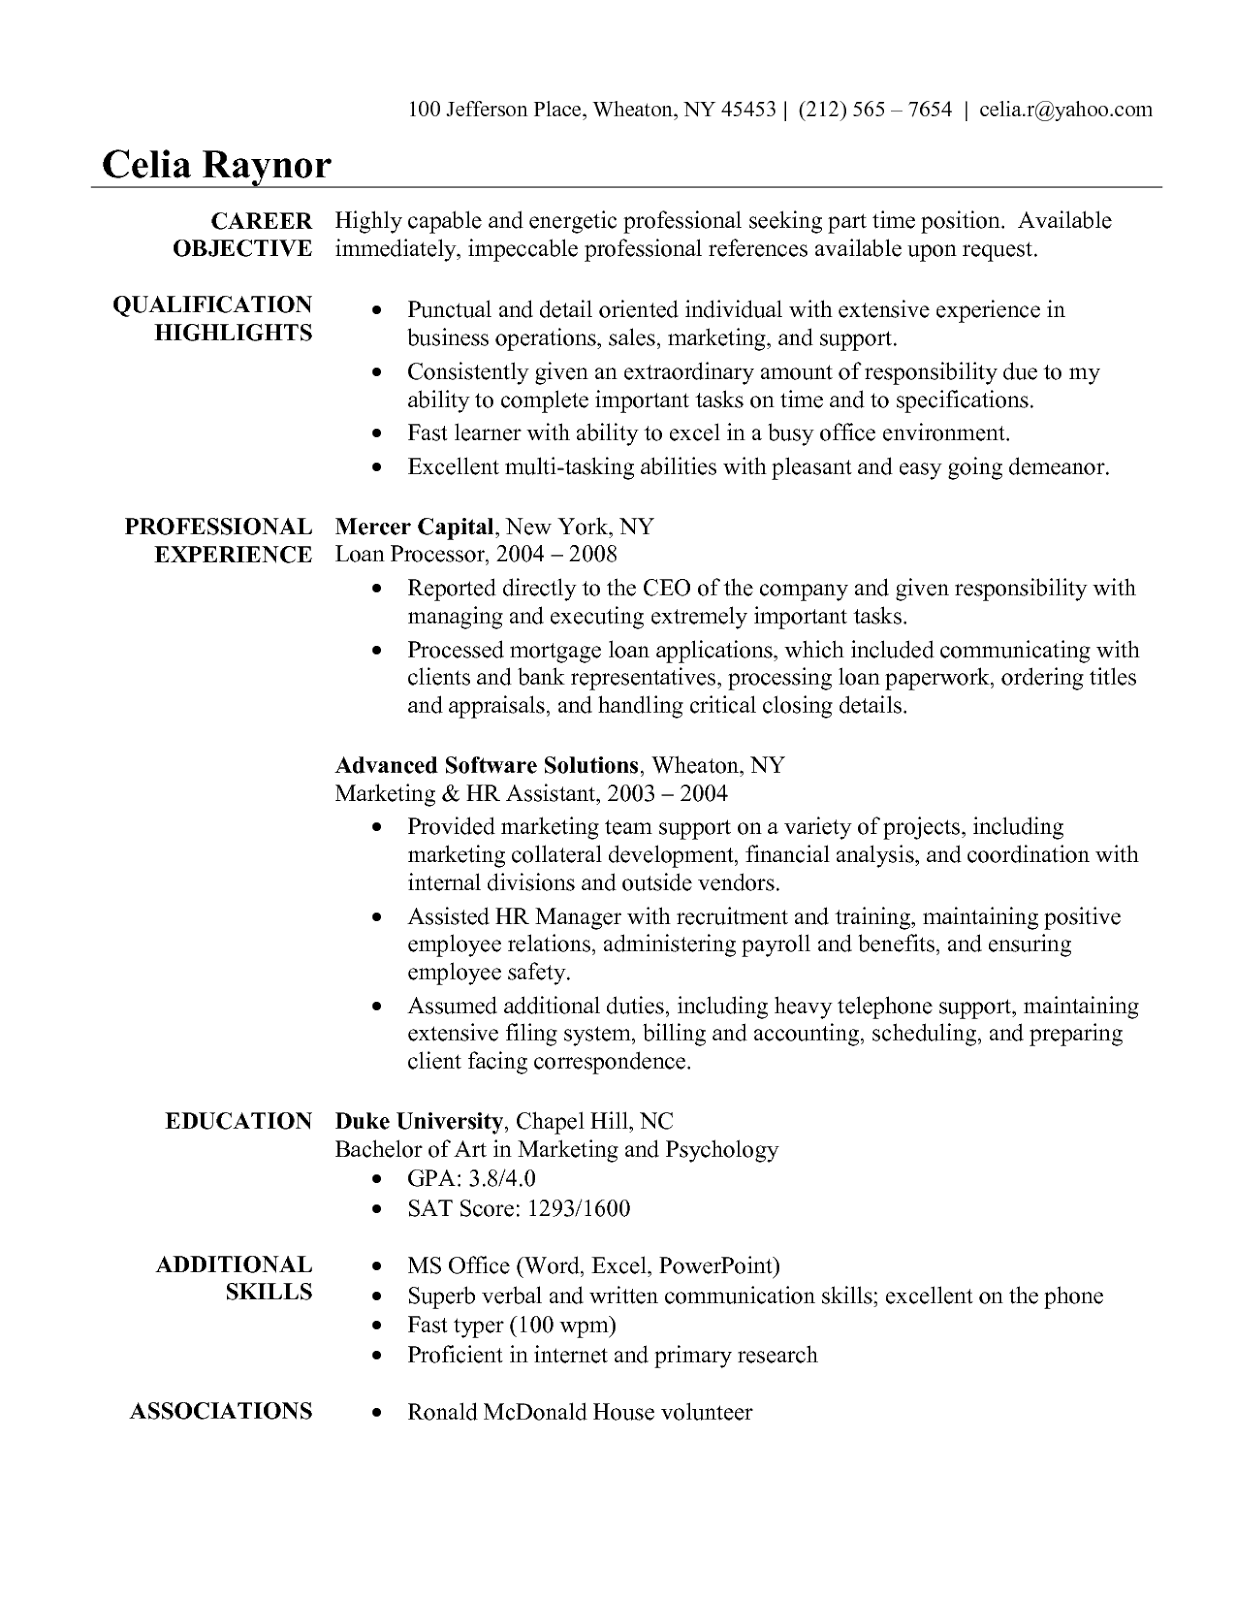 Systems Administrator Resume Examples Sample For Administrative